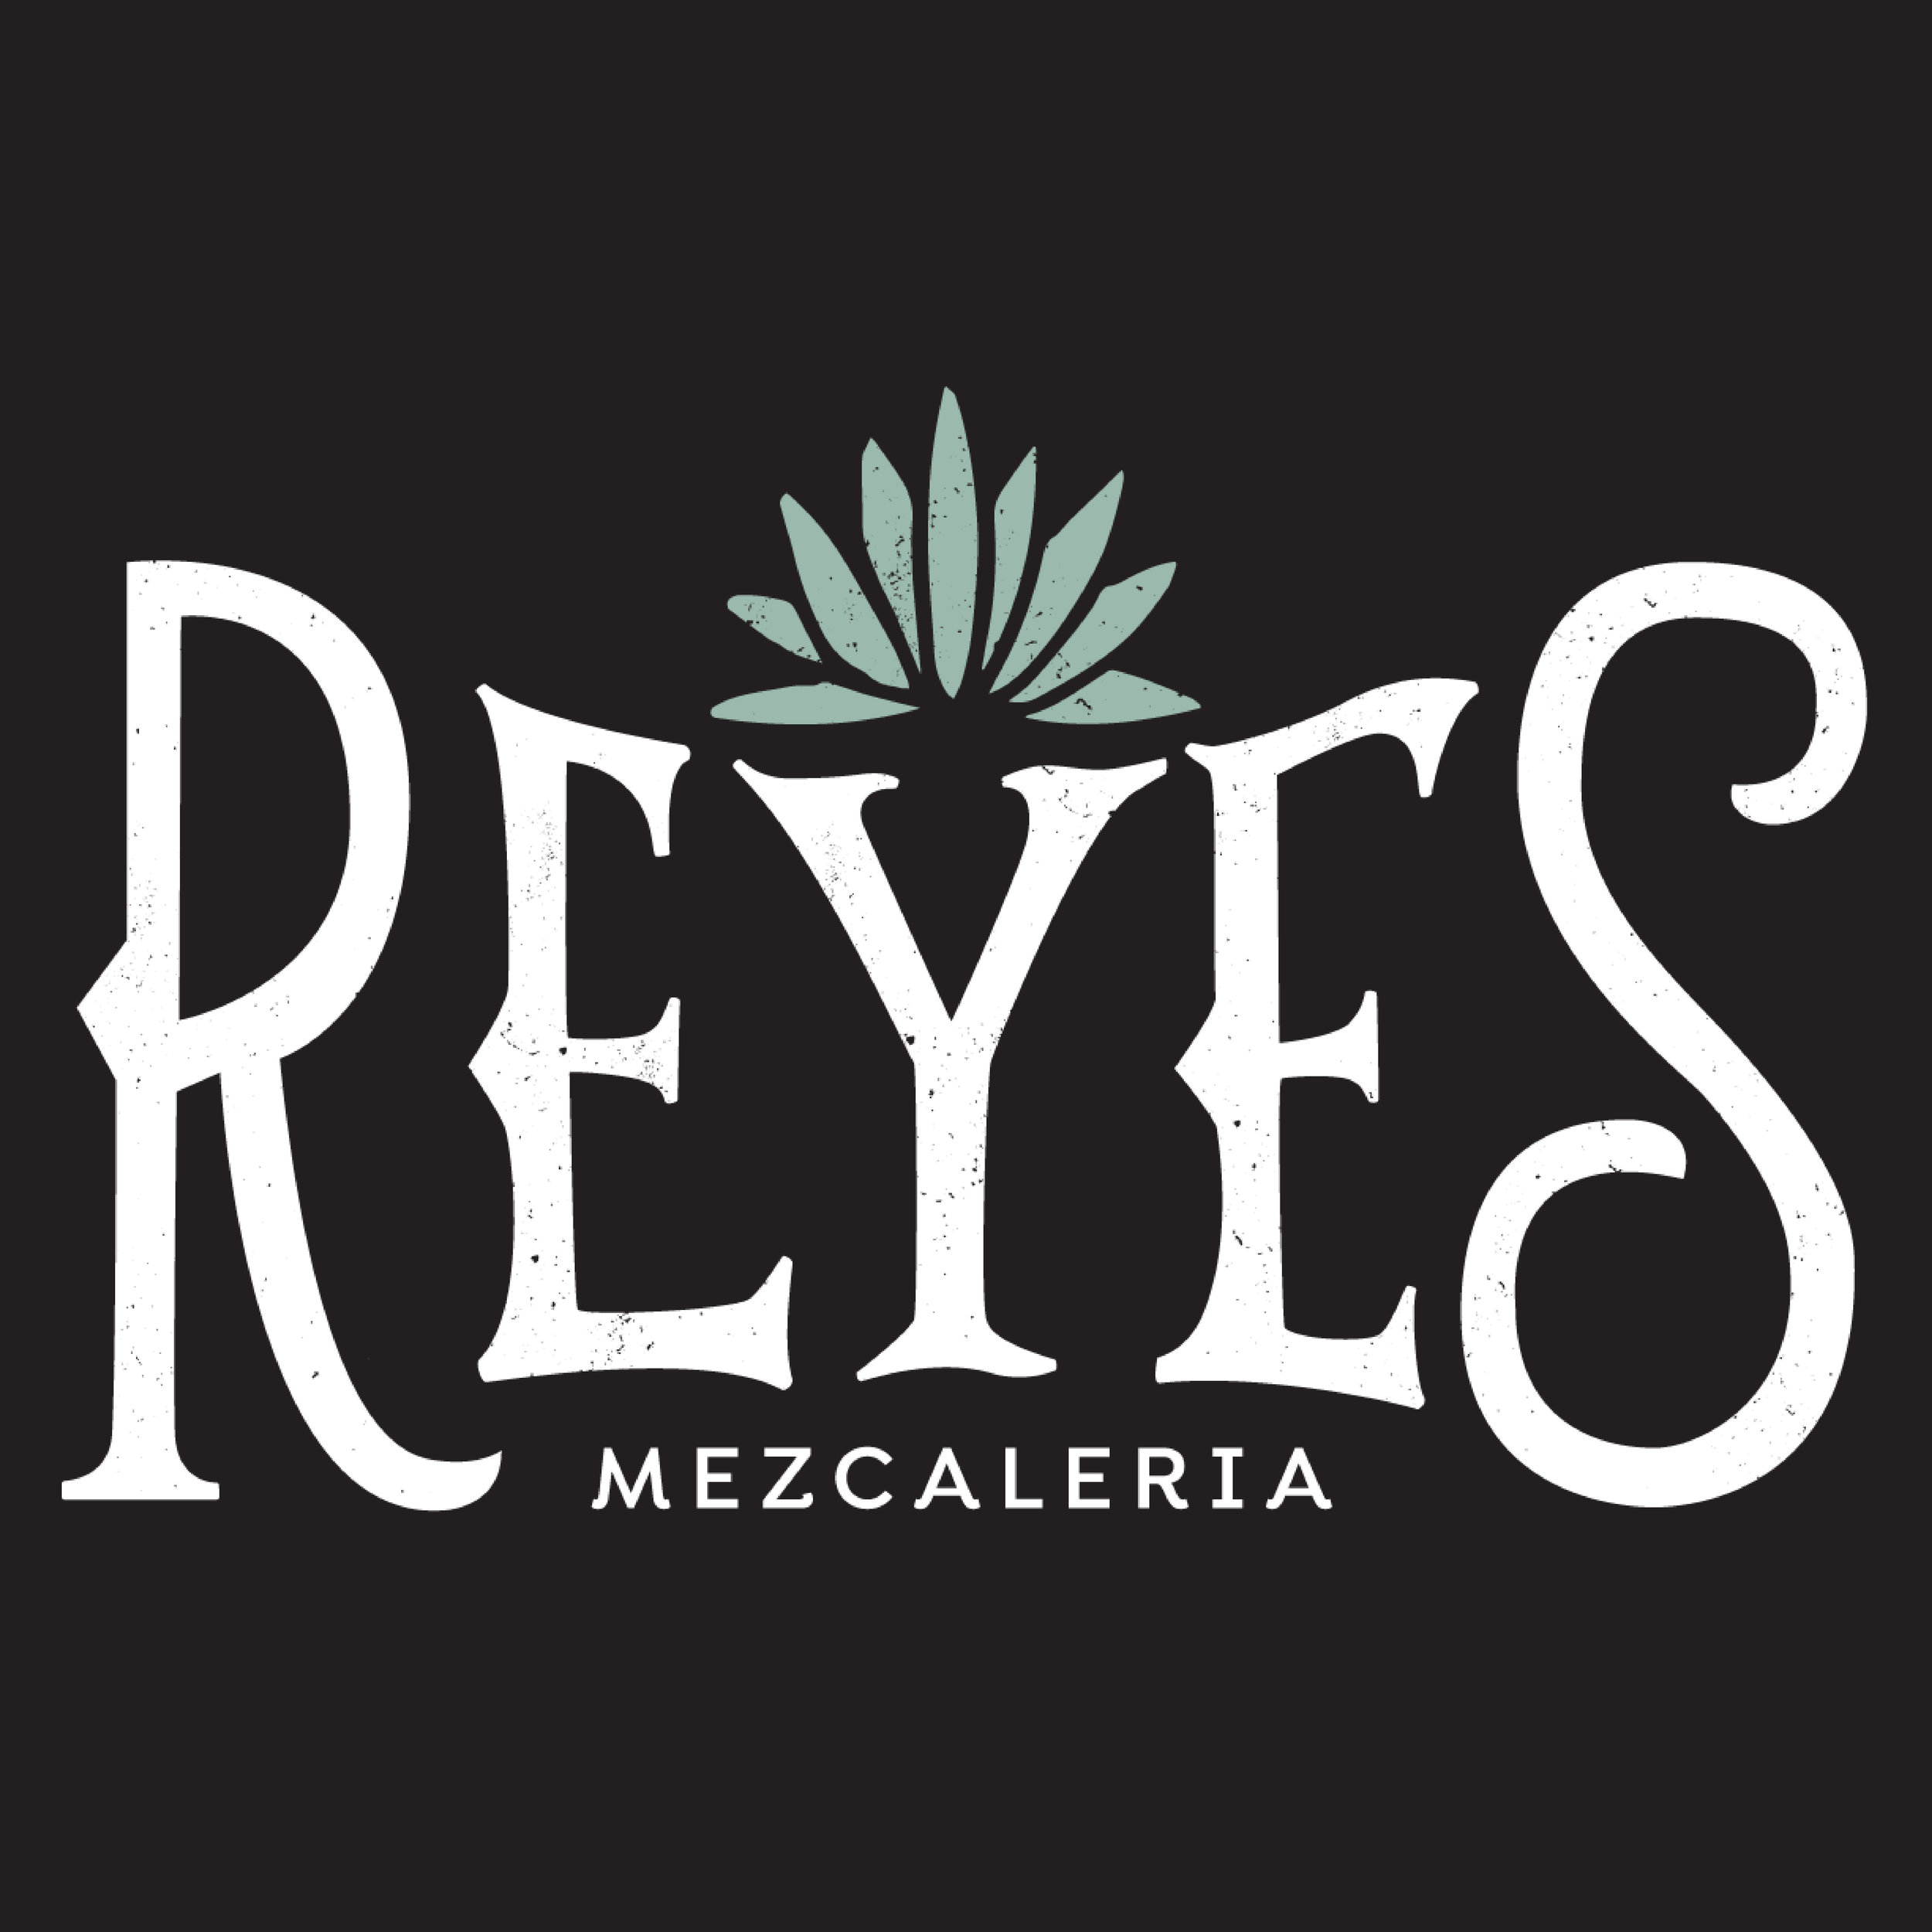 Reyes Mezcaleria    821 N Orange Ave Orlando FL 32801  Phone: 407-868-9007